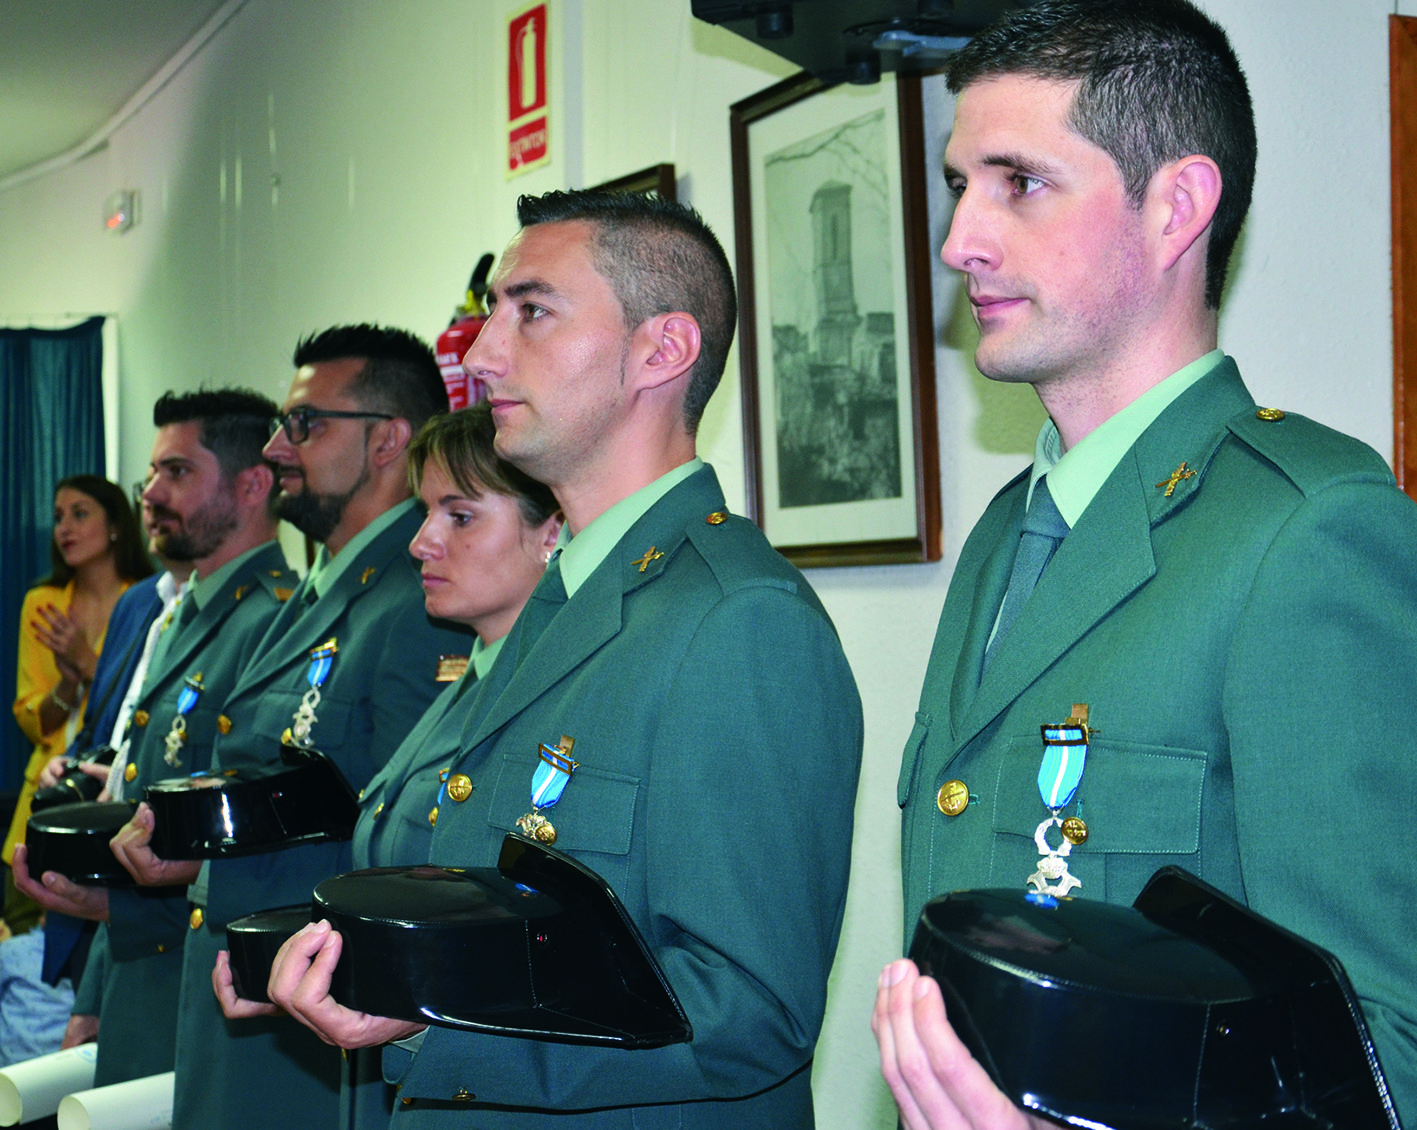 La Guardia Civil de Camporrells recibe la Cruz al Mérito Civil